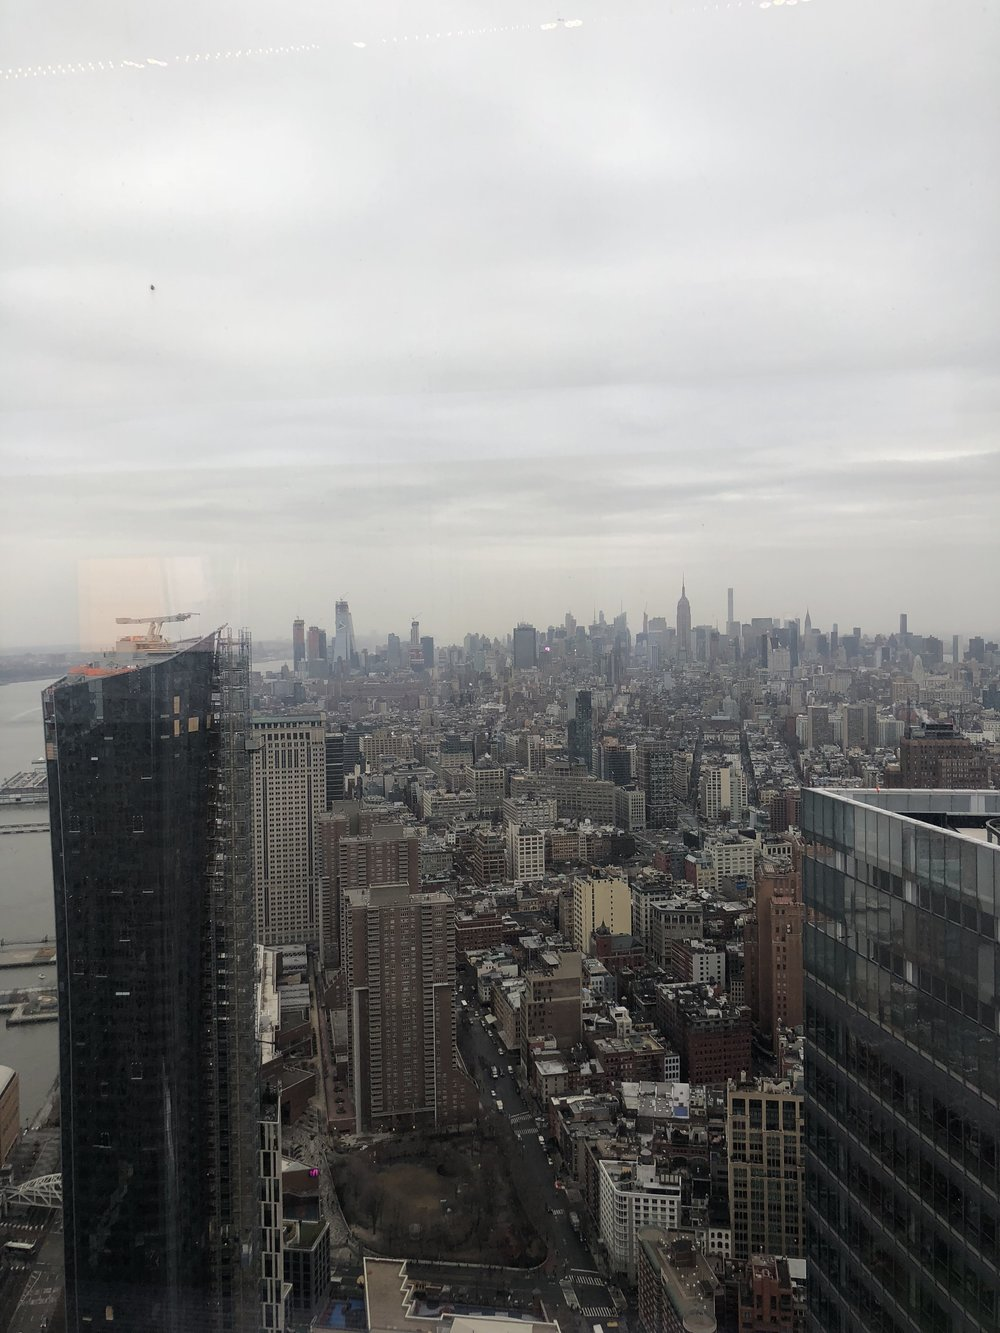 View from the 60th floor at One WTC